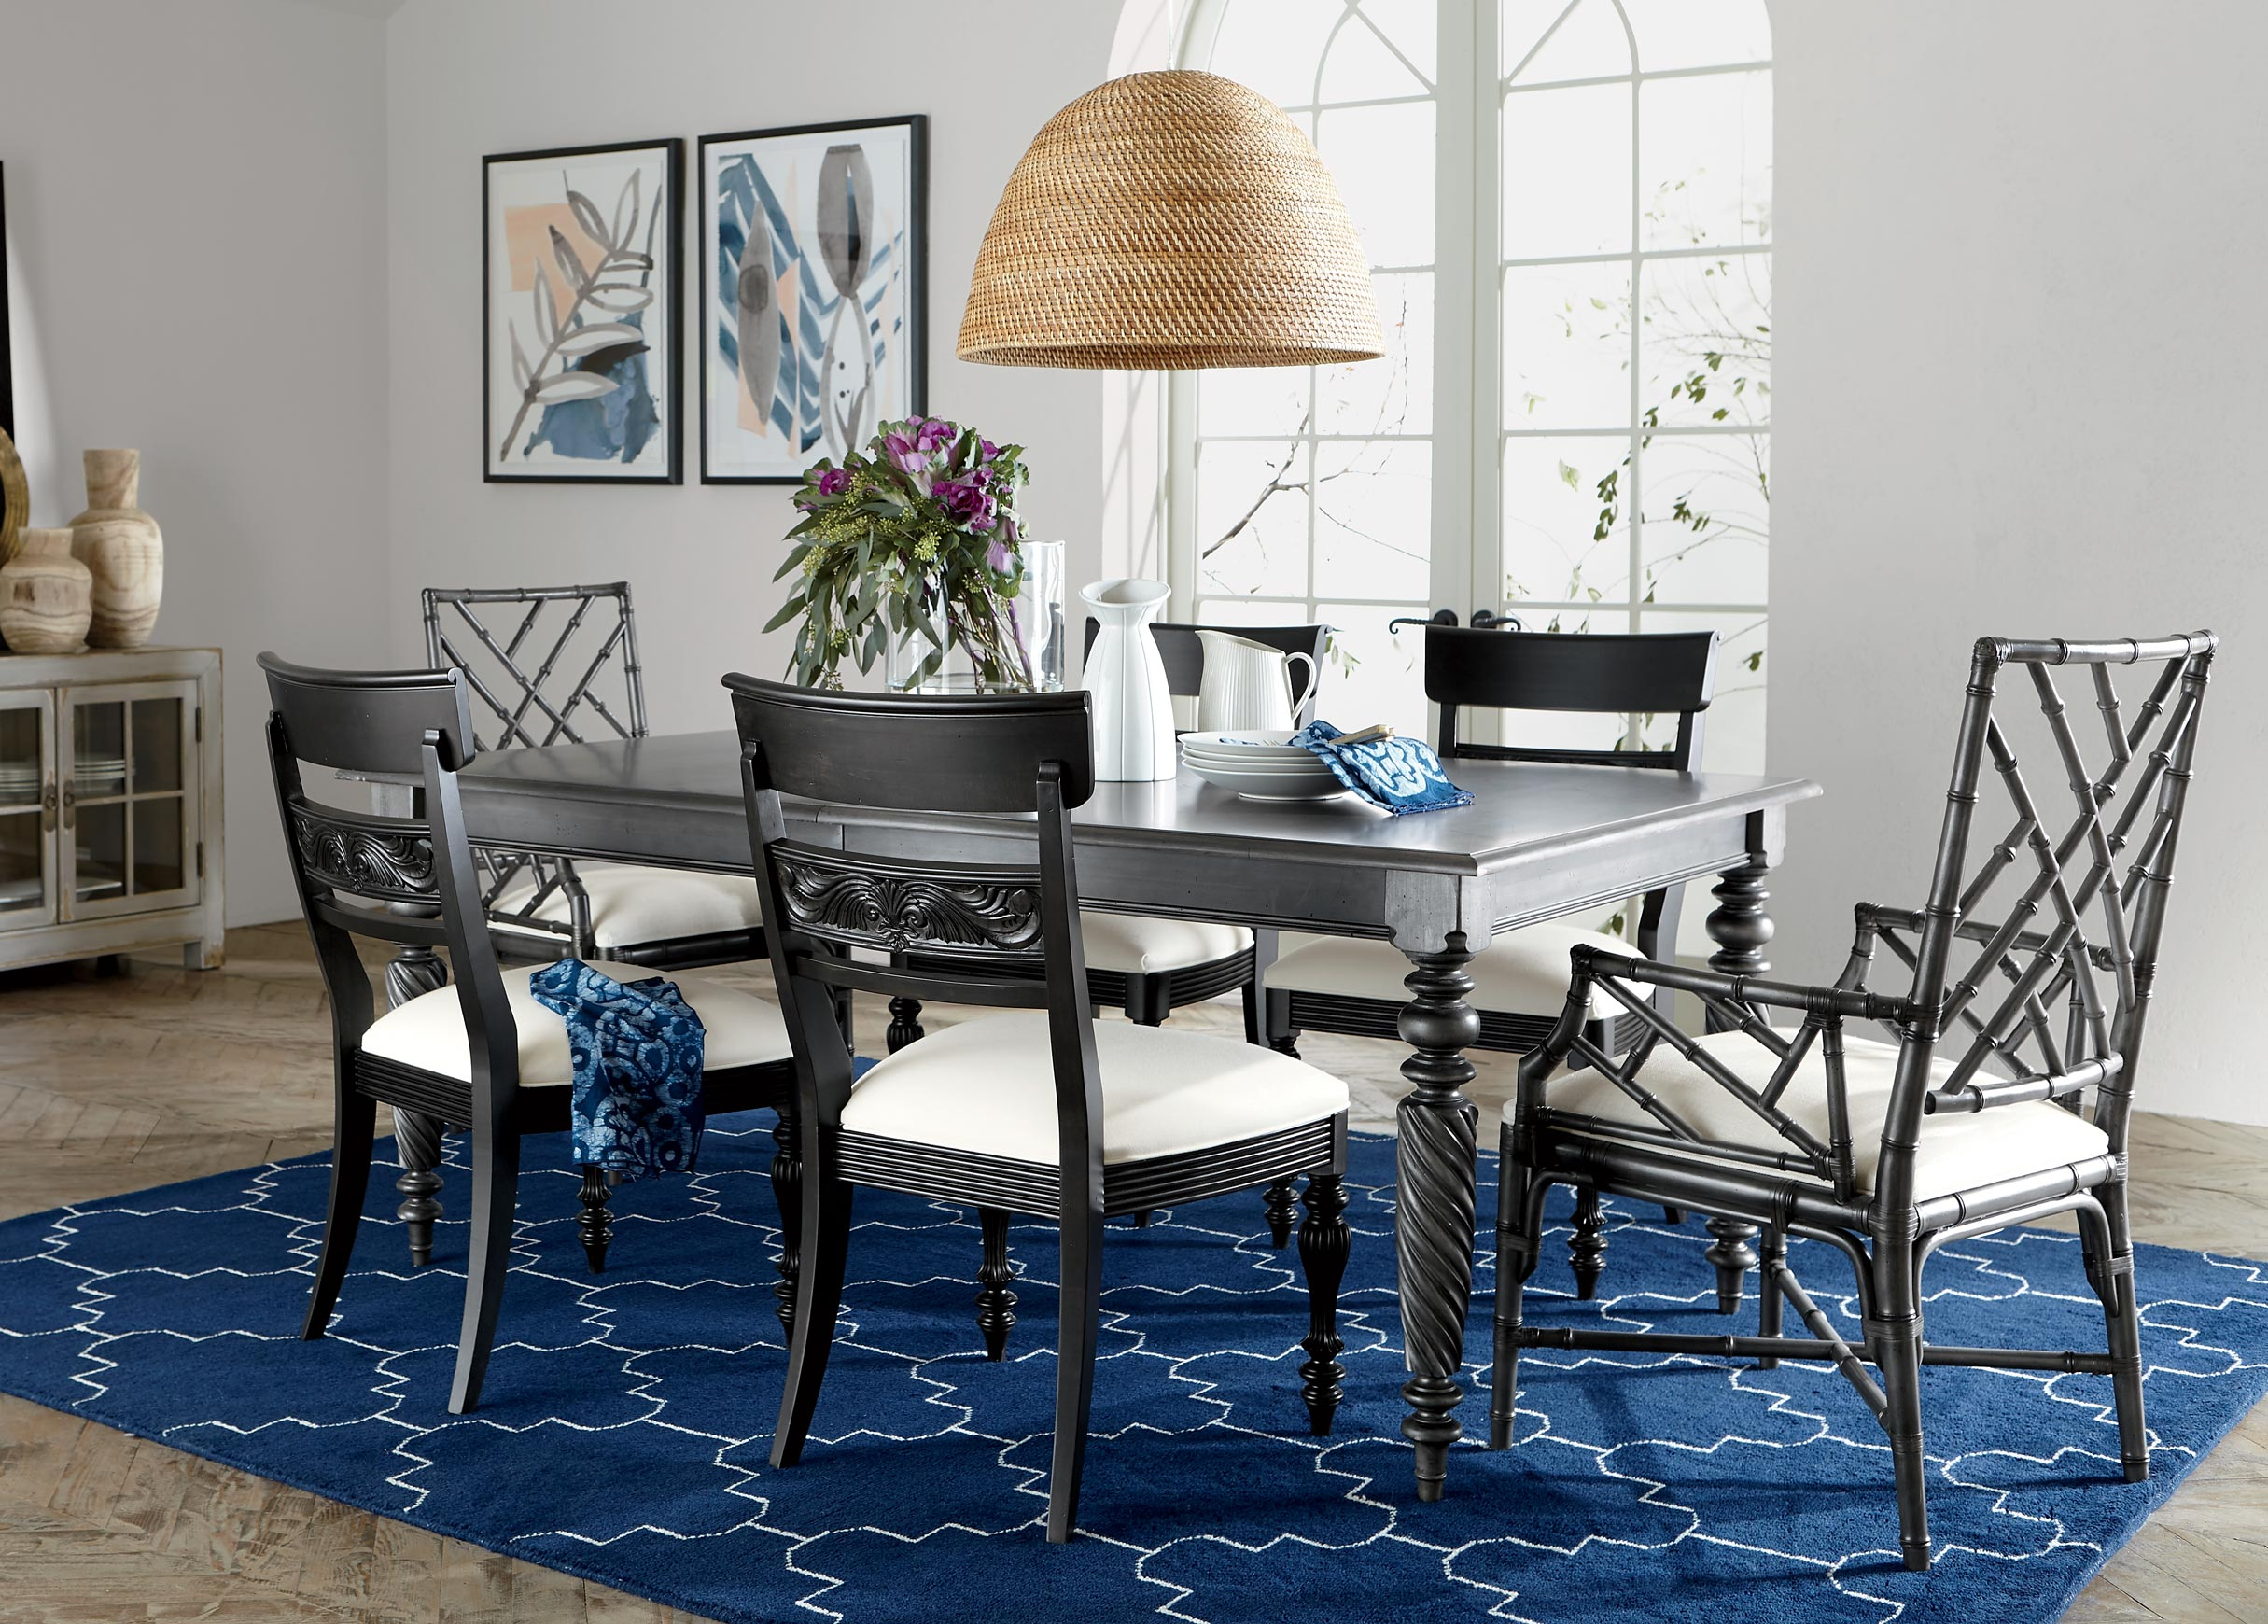 Island-Inspired Dining Room Main Image